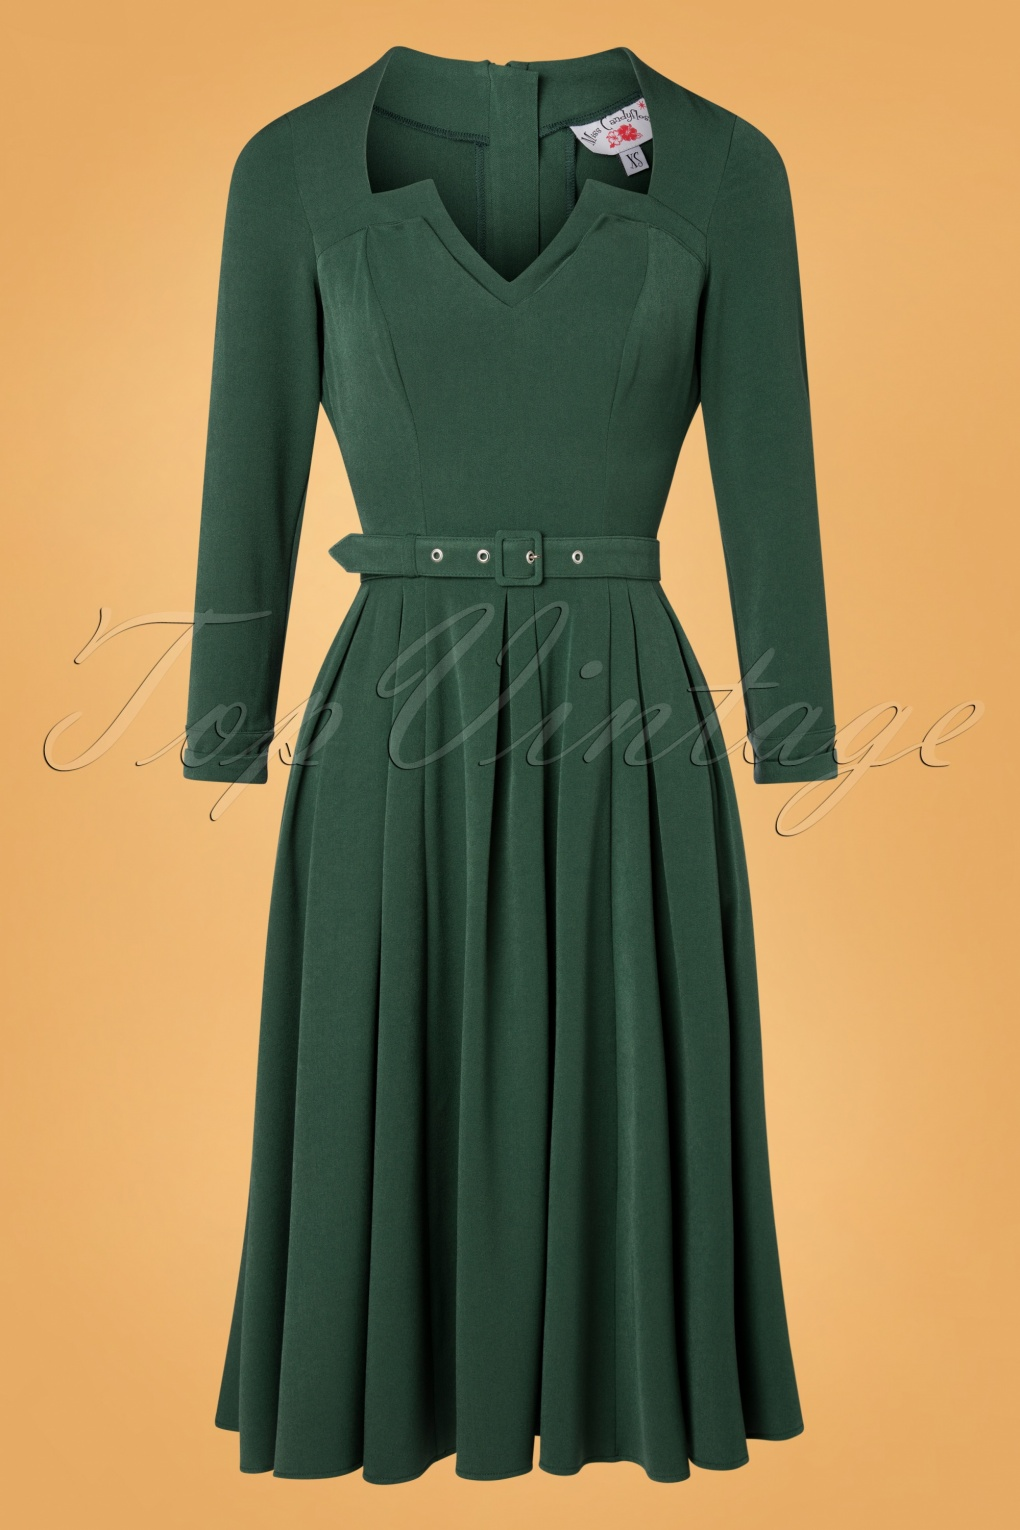 Plus Size Swing Dresses, Vintage Dresses TopVintage exclusive  50s Penny-Lee Swing Dress in Emerald £100.39 AT vintagedancer.com